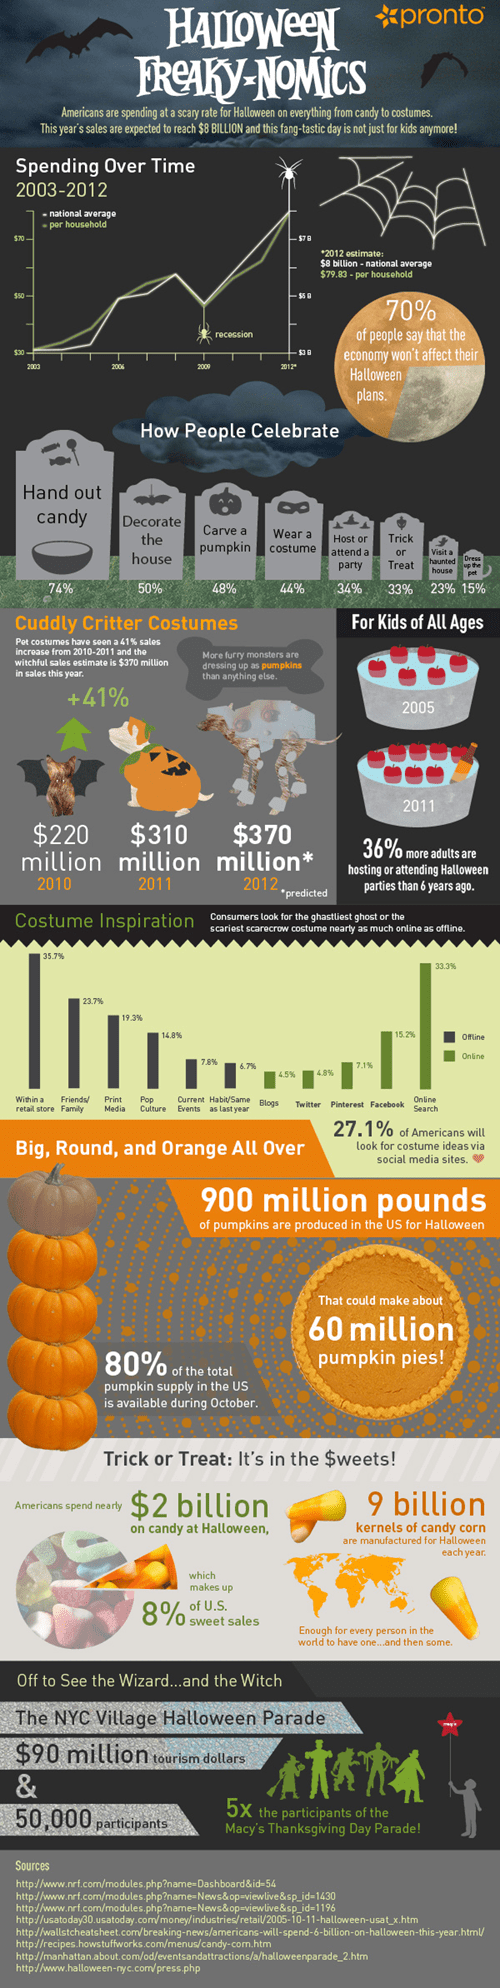 halloween,Economics,infographic